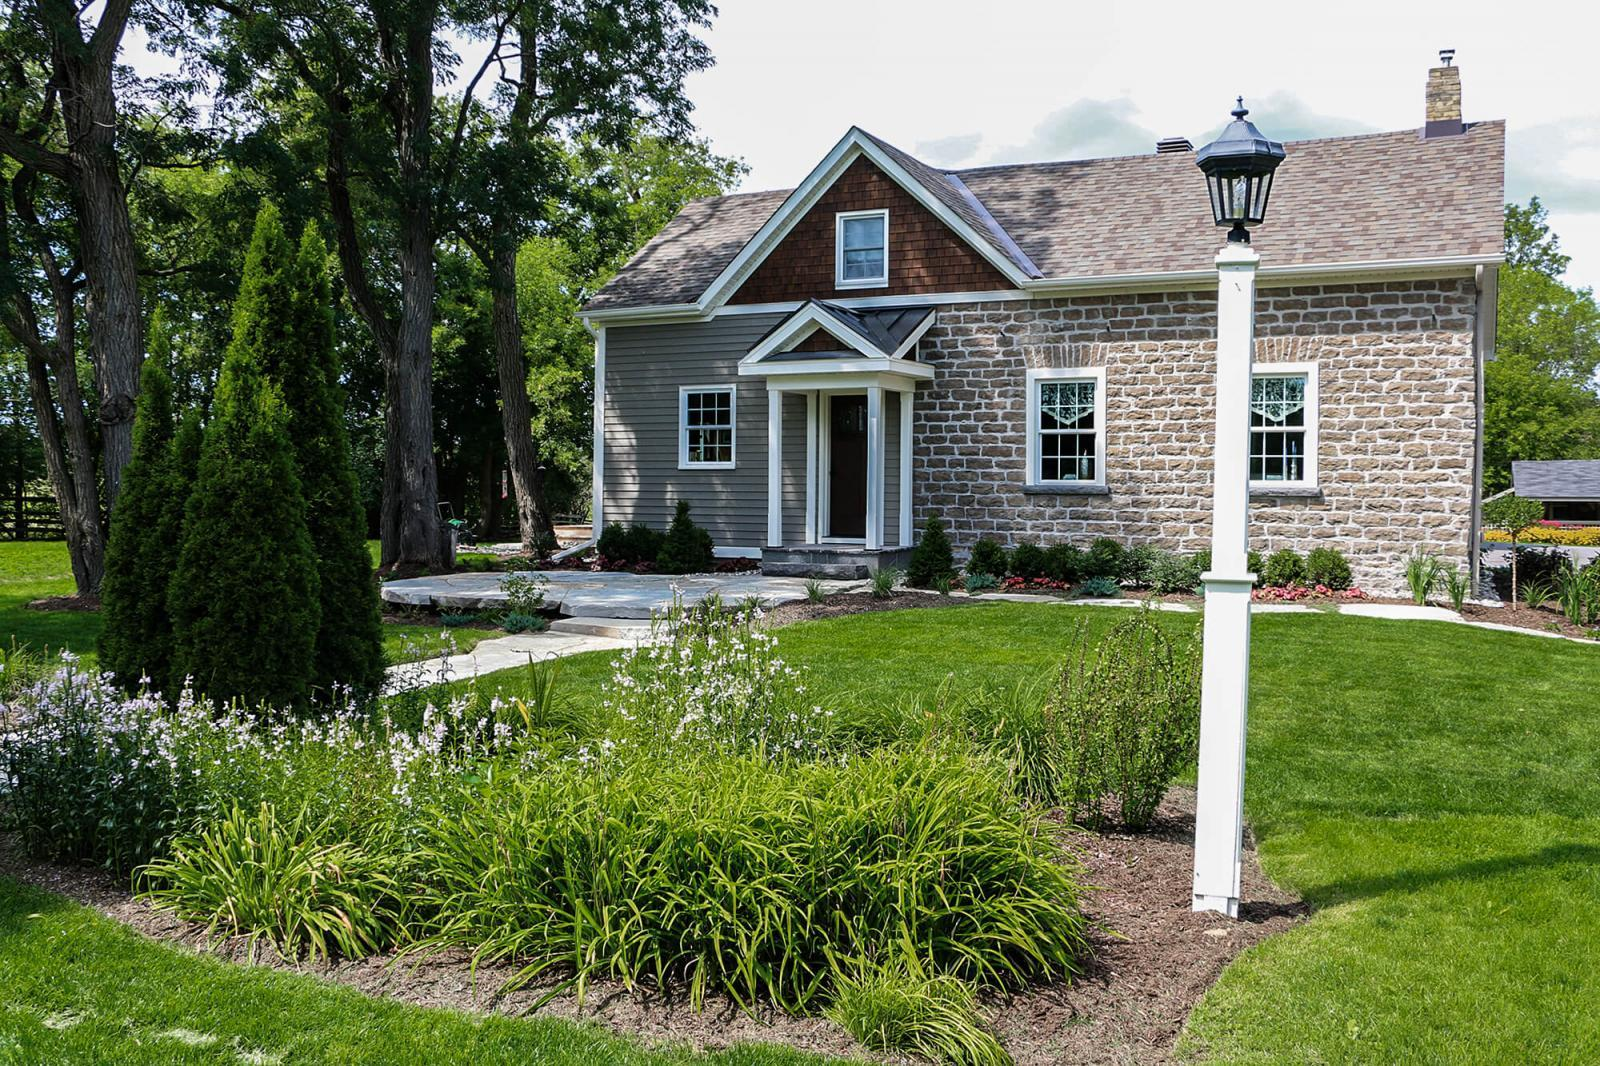 Some residential properties in and around Perth are cottages or vacation homes of people from Ottawa; a niche specialty for Terrascapes.